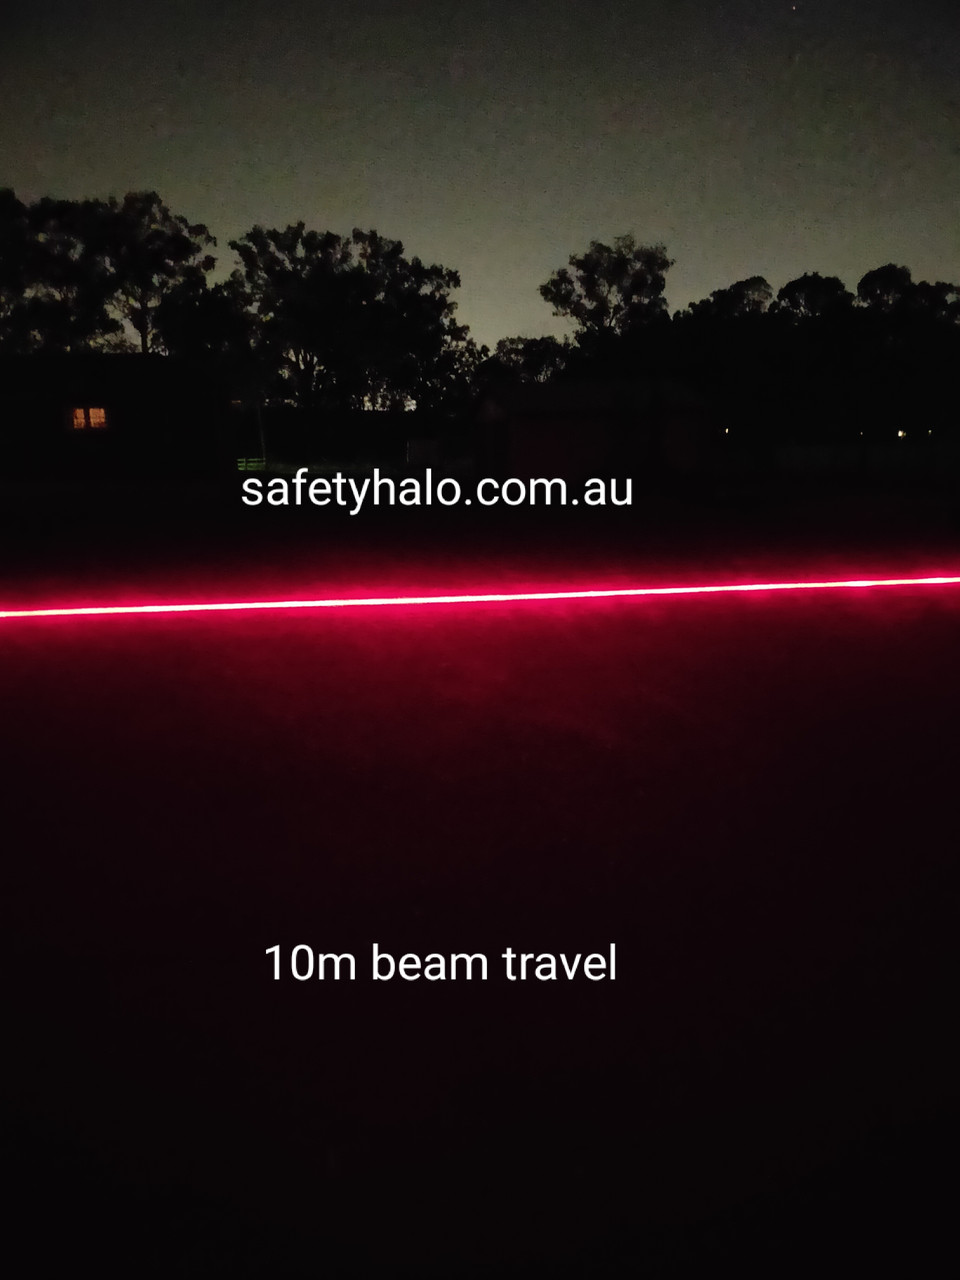 1. Laser Safety Halo Red Line Boundary Beam. Workplace Safety Exclusion Zone Around Heavy Machinery. Mining Machines Exclusion Zone. Warehouse Exclusion Zones. Transport Vehicle Loading Bay Exclusion Zones.